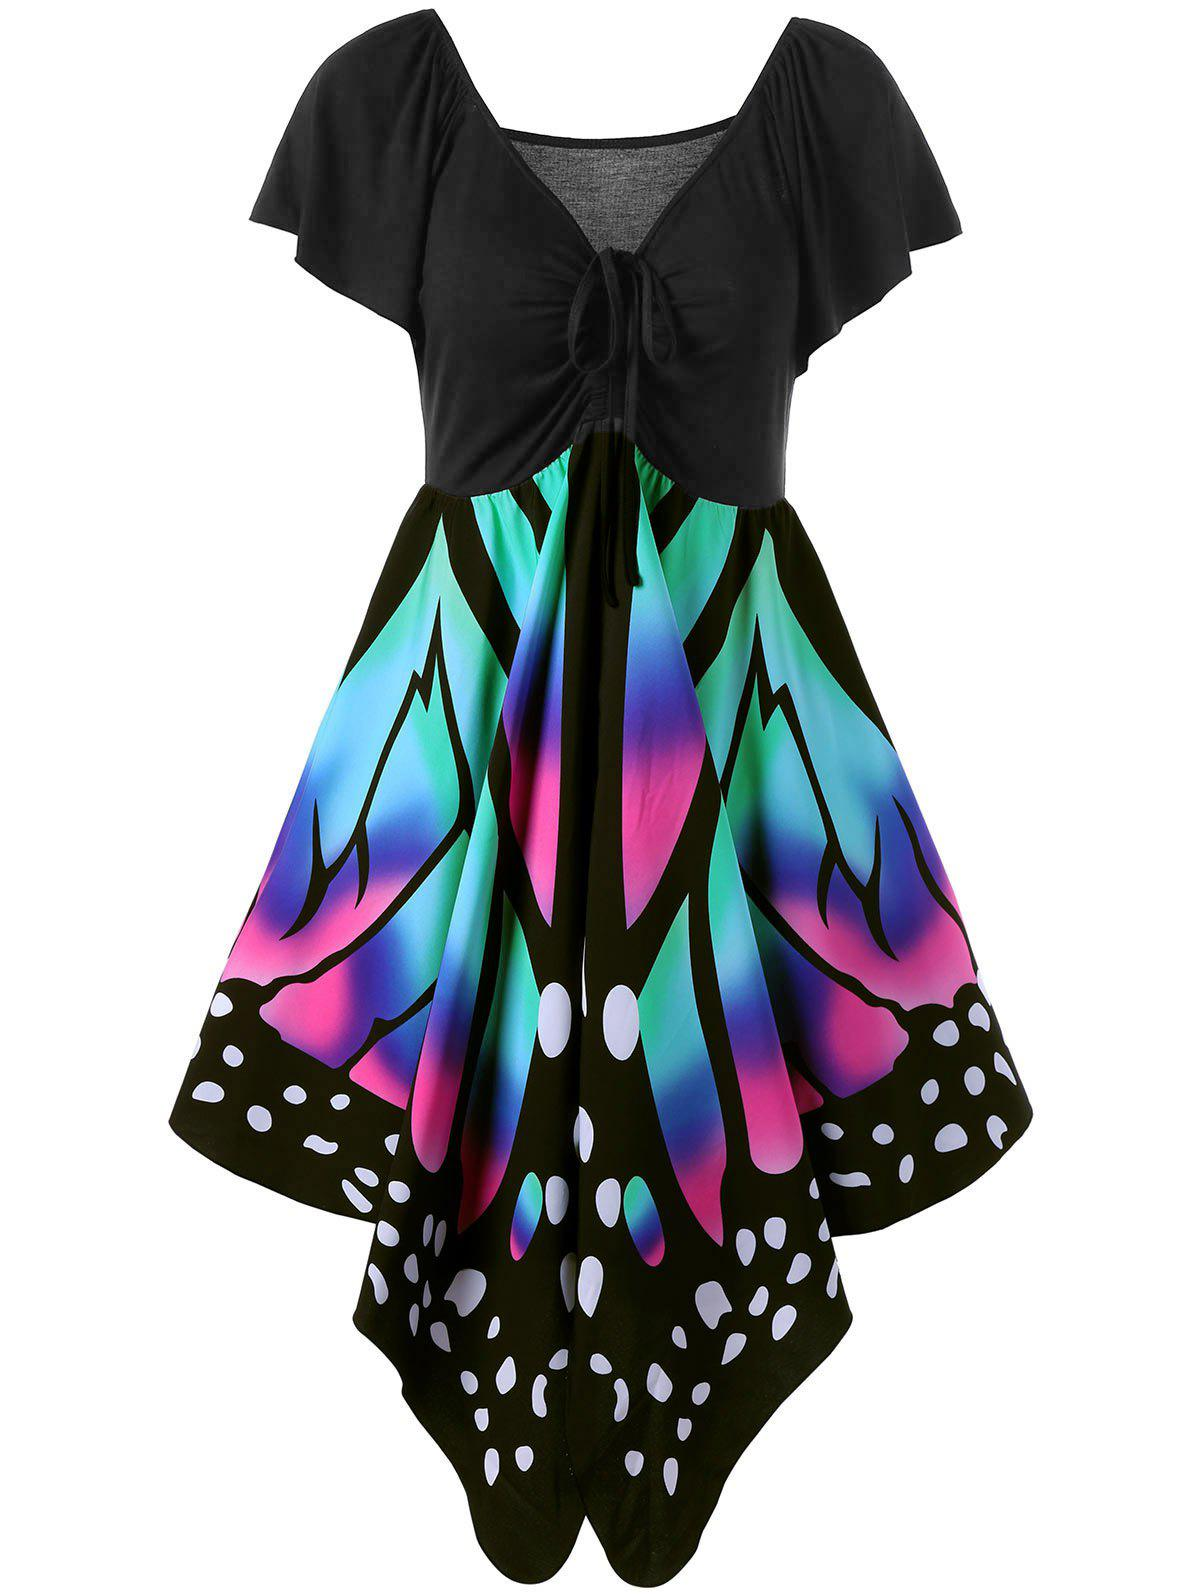 Butterfly Graphic DressWOMEN<br><br>Size: XL; Color: BLACK AND PINK; Style: Cute; Material: Polyester; Silhouette: Asymmetrical; Dresses Length: Mini; Neckline: V-Neck; Sleeve Length: Short Sleeves; Pattern Type: Print; With Belt: No; Season: Summer; Weight: 0.4200kg; Package Contents: 1 x Dress; Occasion: Casual;